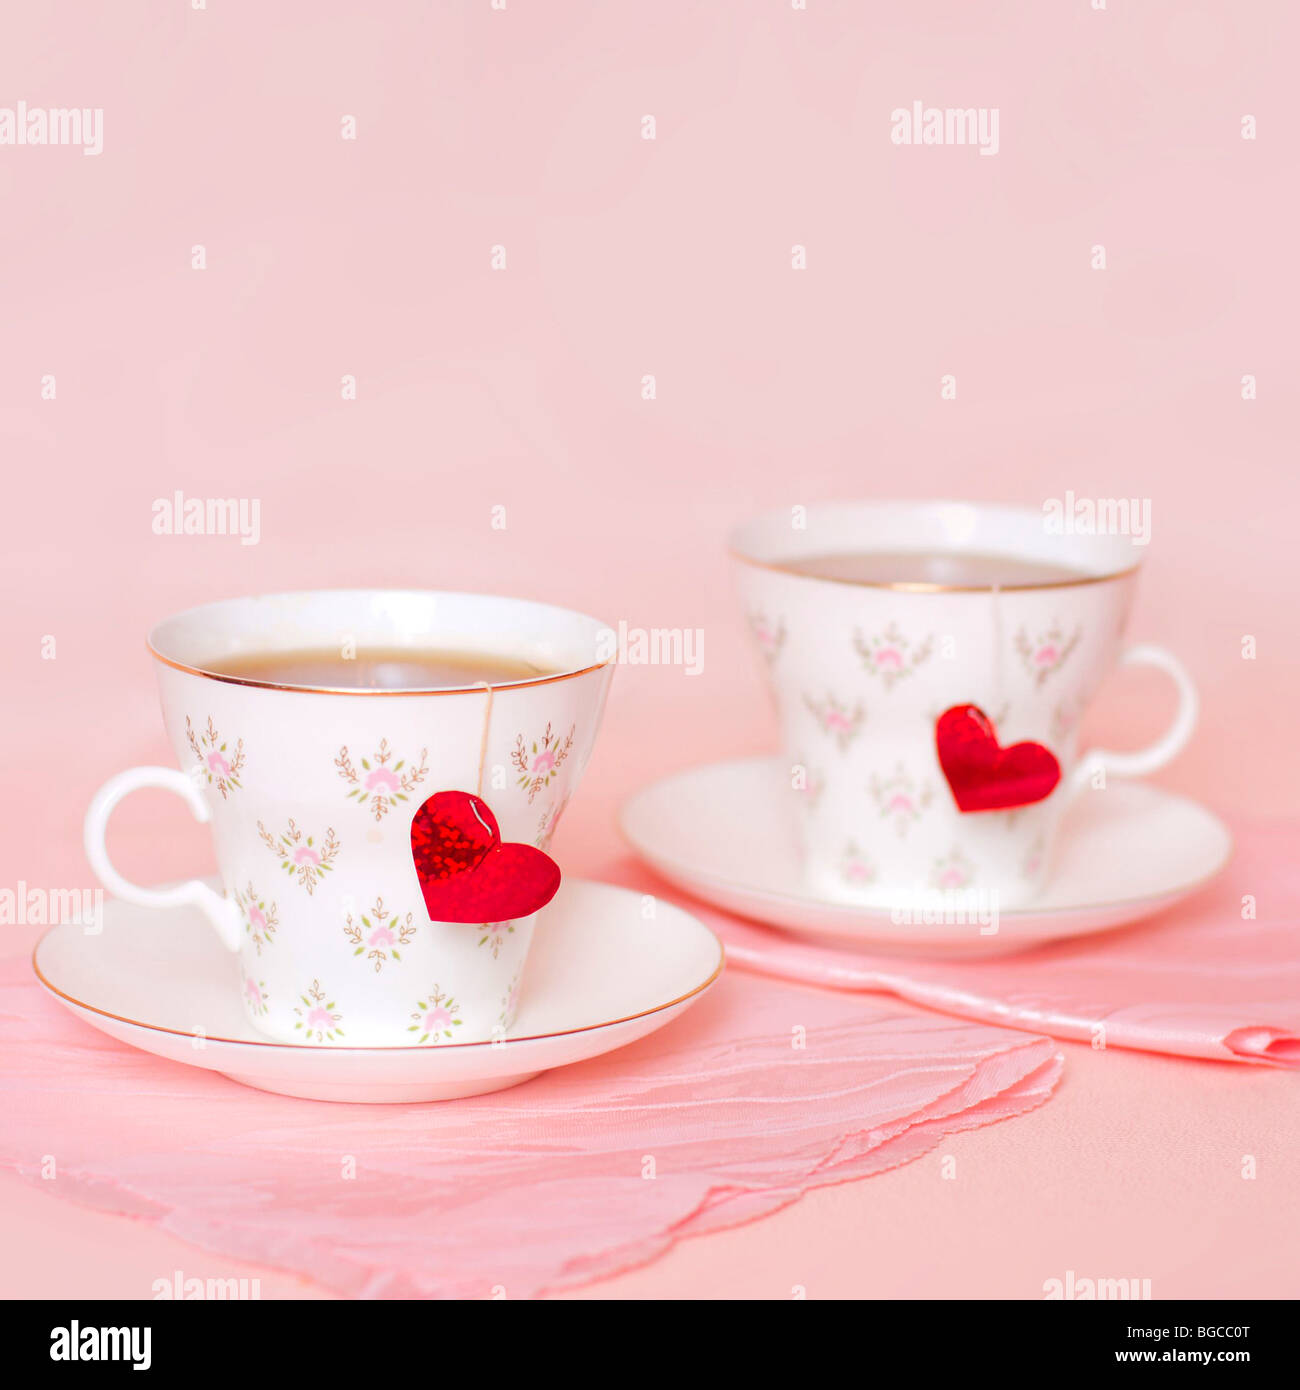 two cups with hearts on the pink background - Stock Image